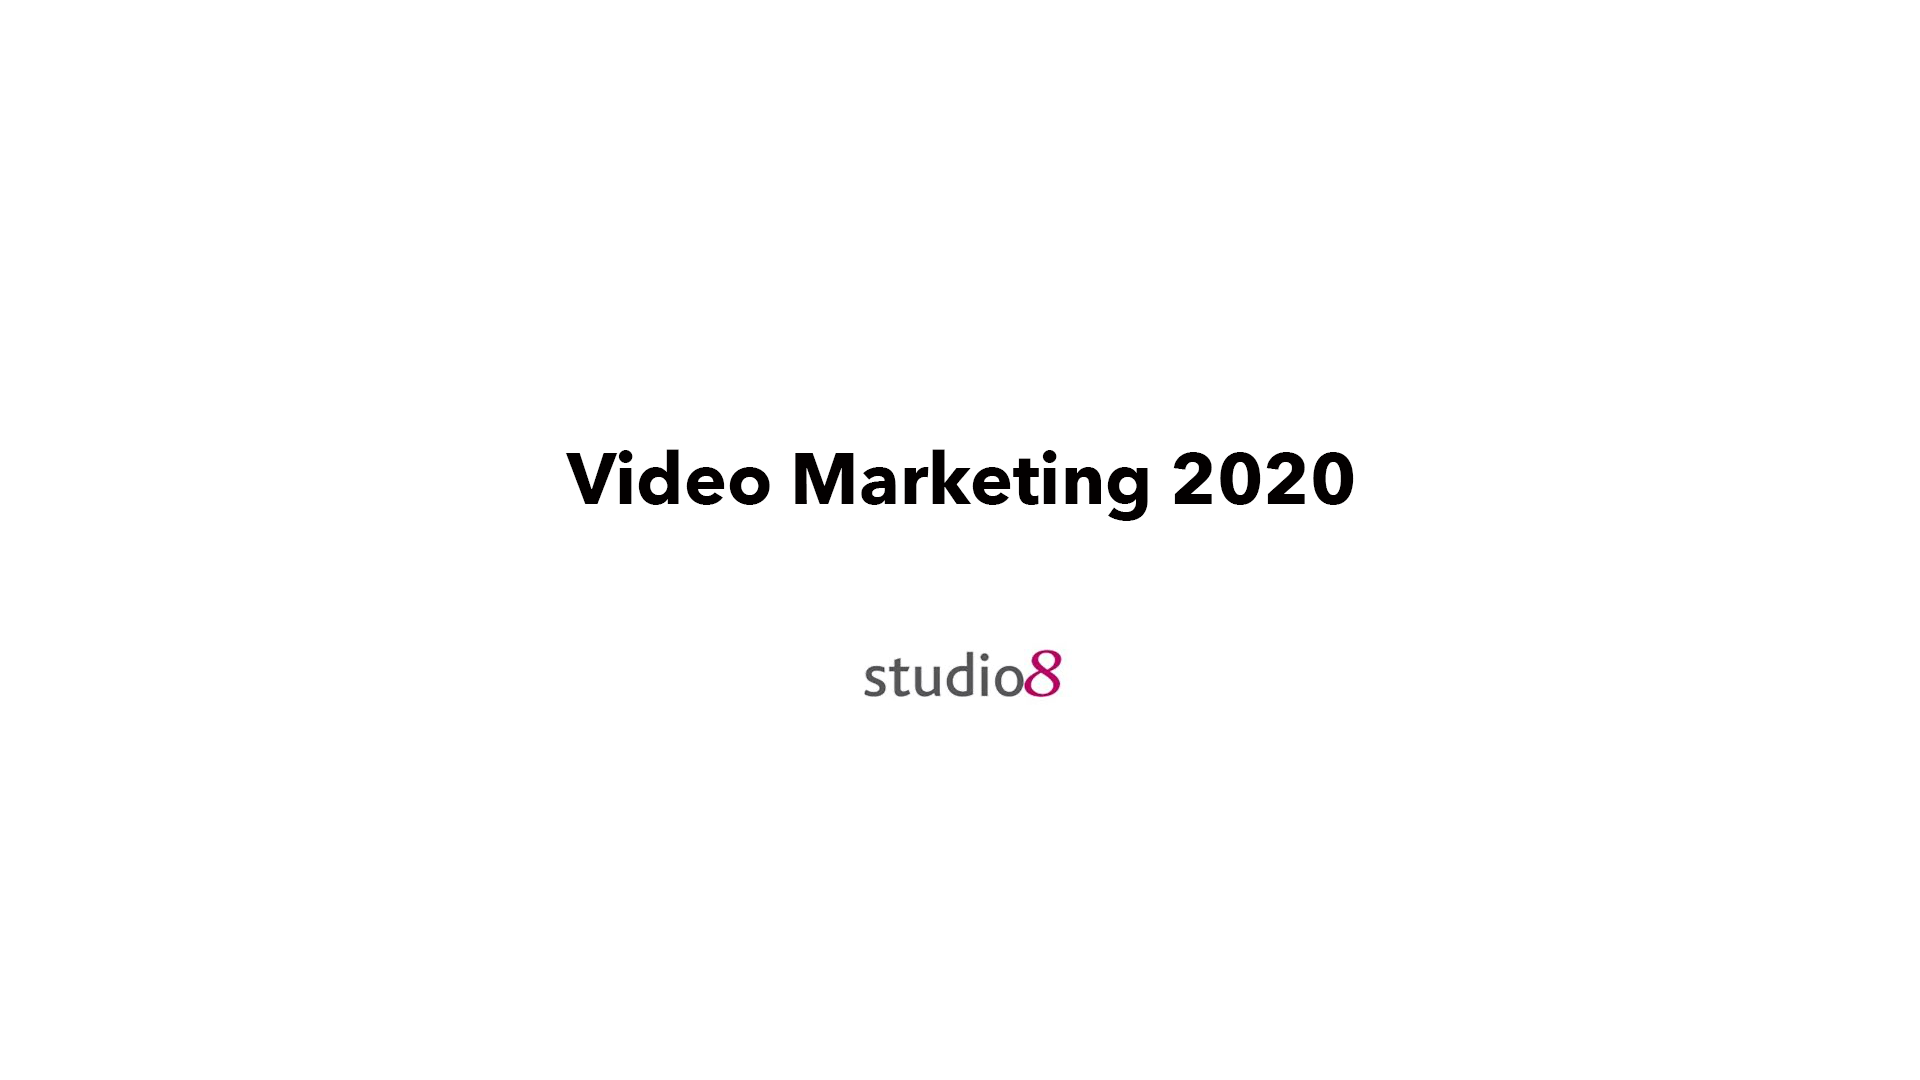 VIDEO MARKETING OXFORD